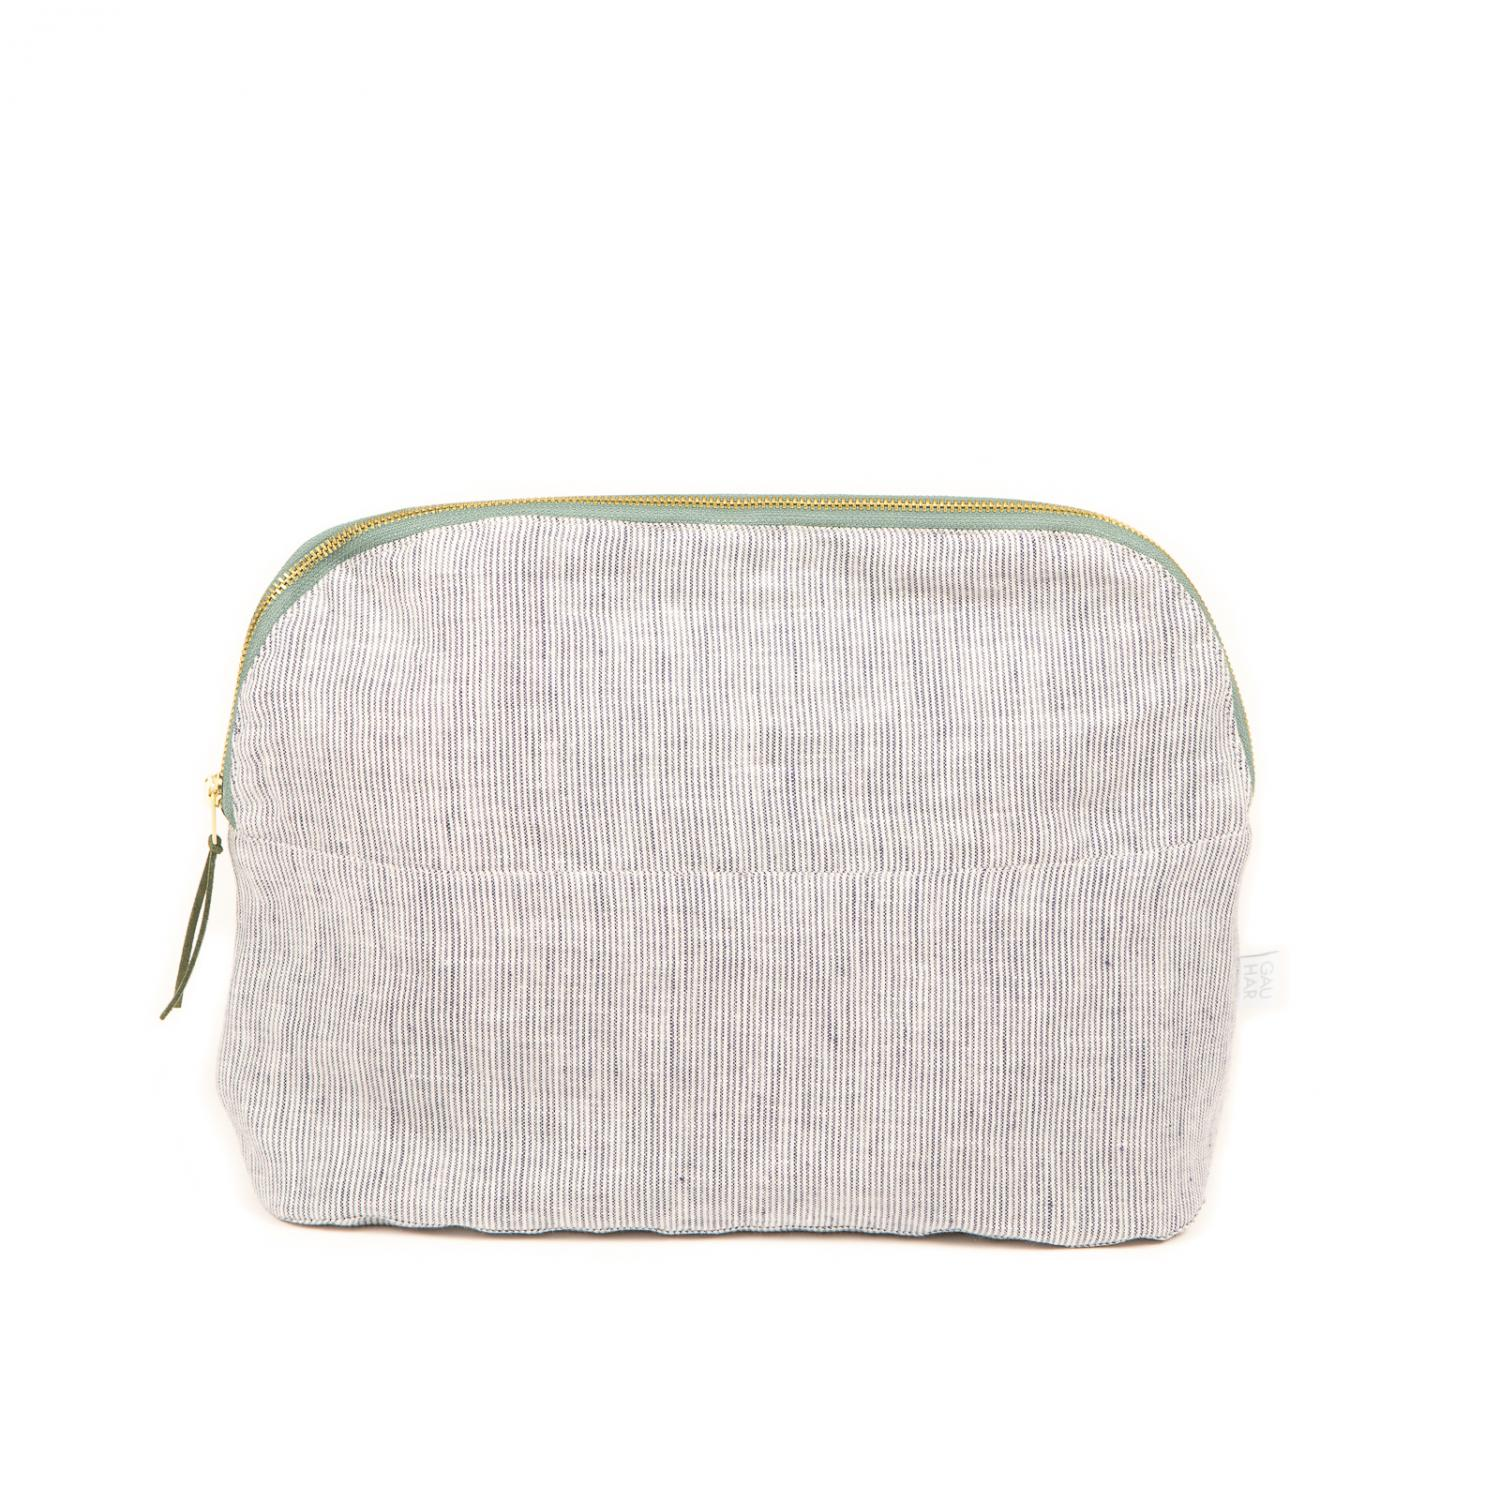 COSMETIC BAG LINEN STRIPED LARGE